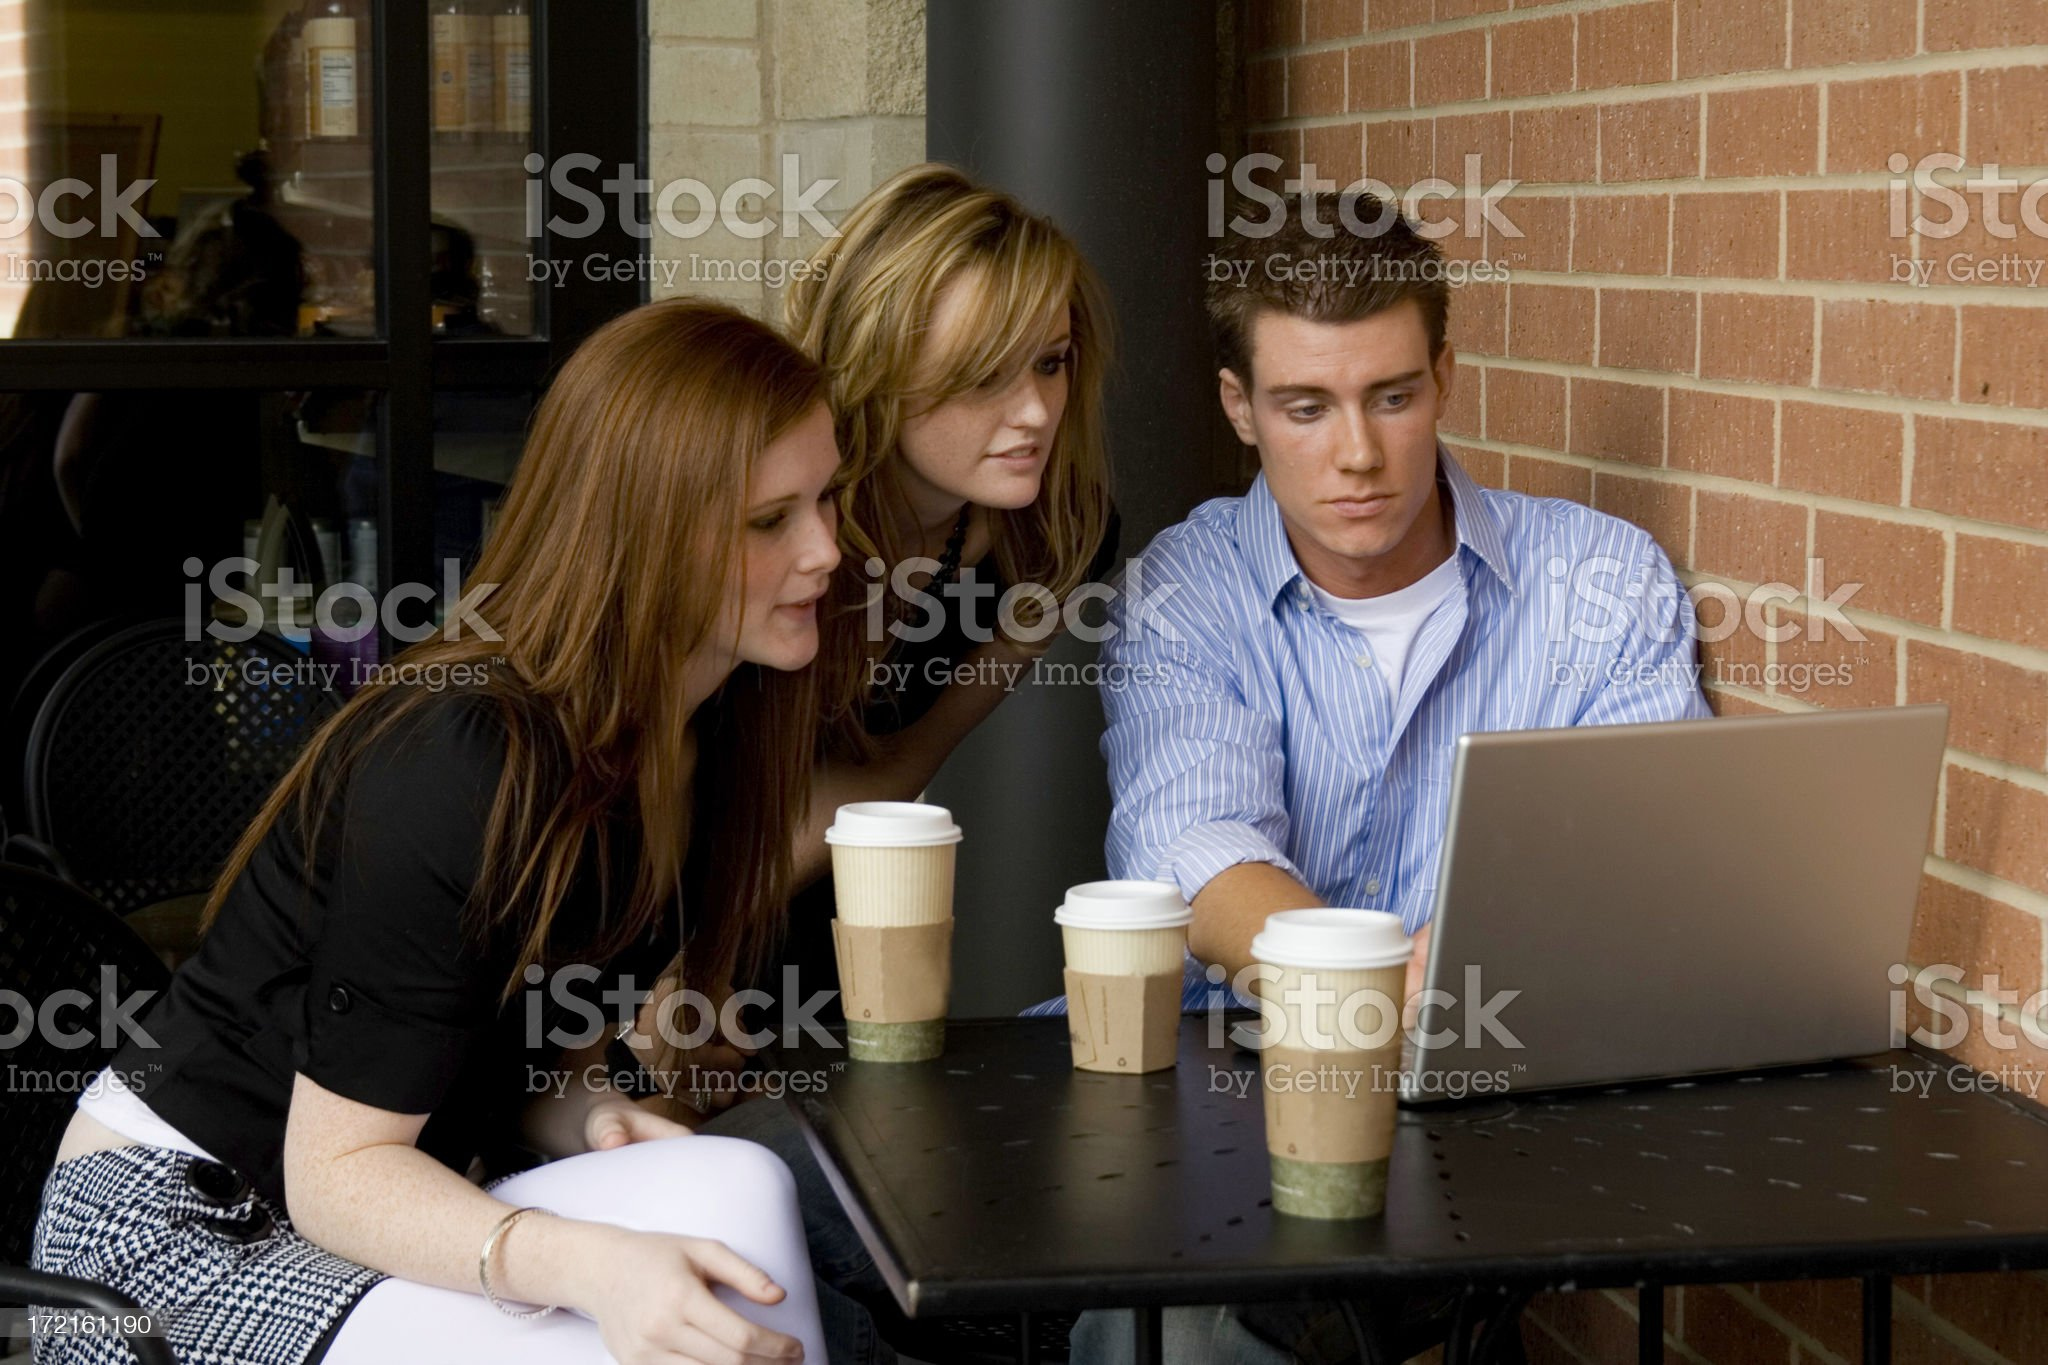 Cofee shop meeting royalty-free stock photo